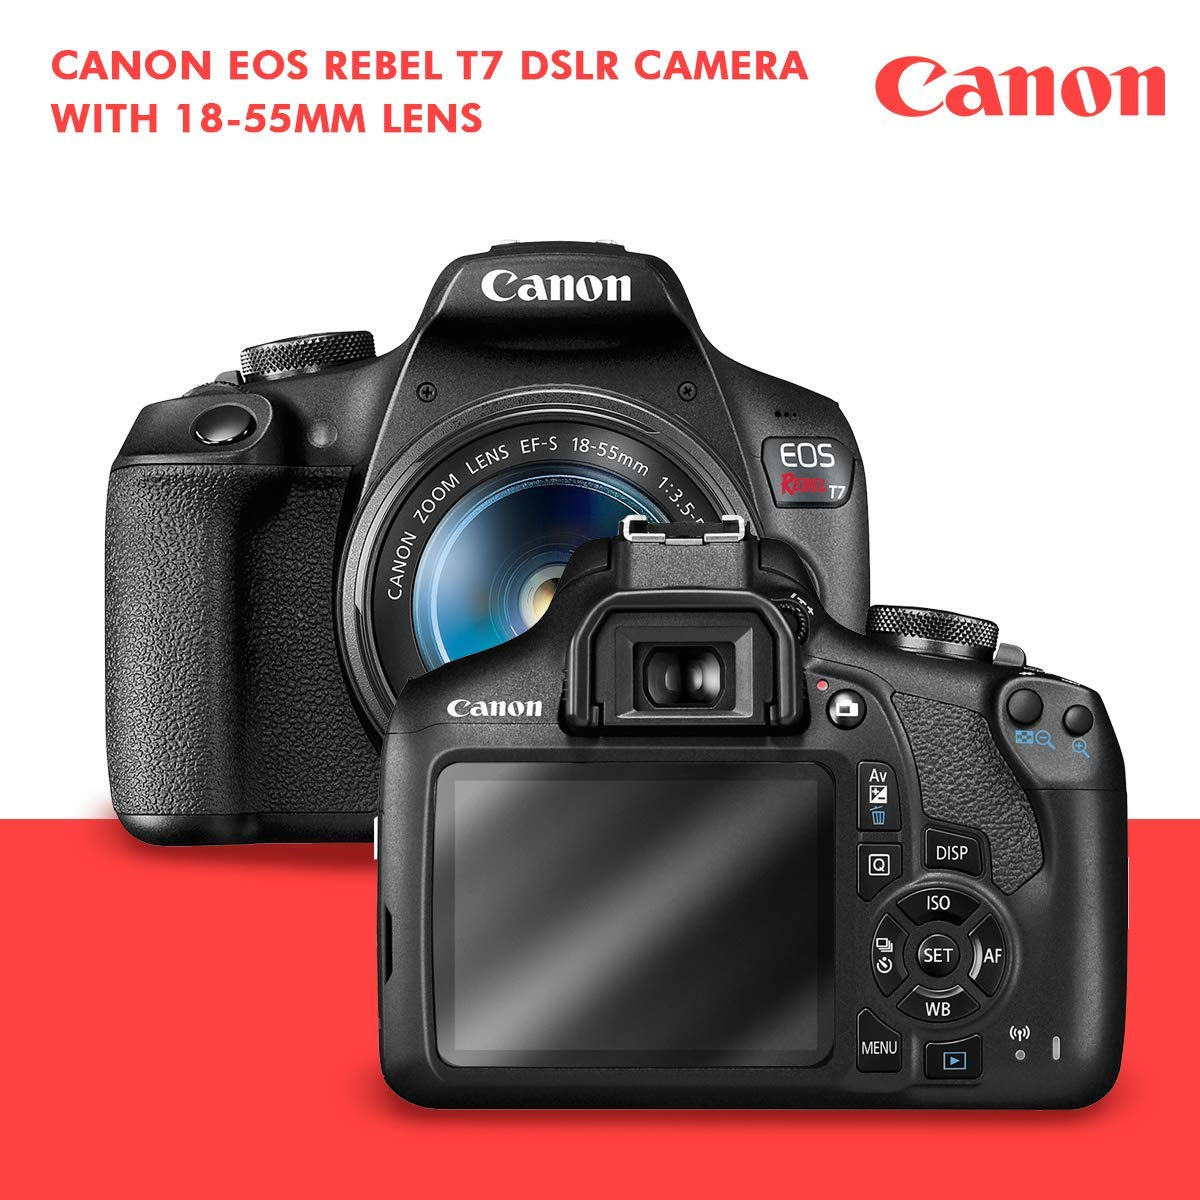 Canon T7 EOS Rebel DSLR Camera with EF-S 18-55mm f/3.5-5.6 is II Lens W/Telephoto & Wideangle Lens 3 Pc. Filter Kit + Tripod + Flash & 2 X 32GB SD Card and Basic Accessory Kit by Canon (Image #2)